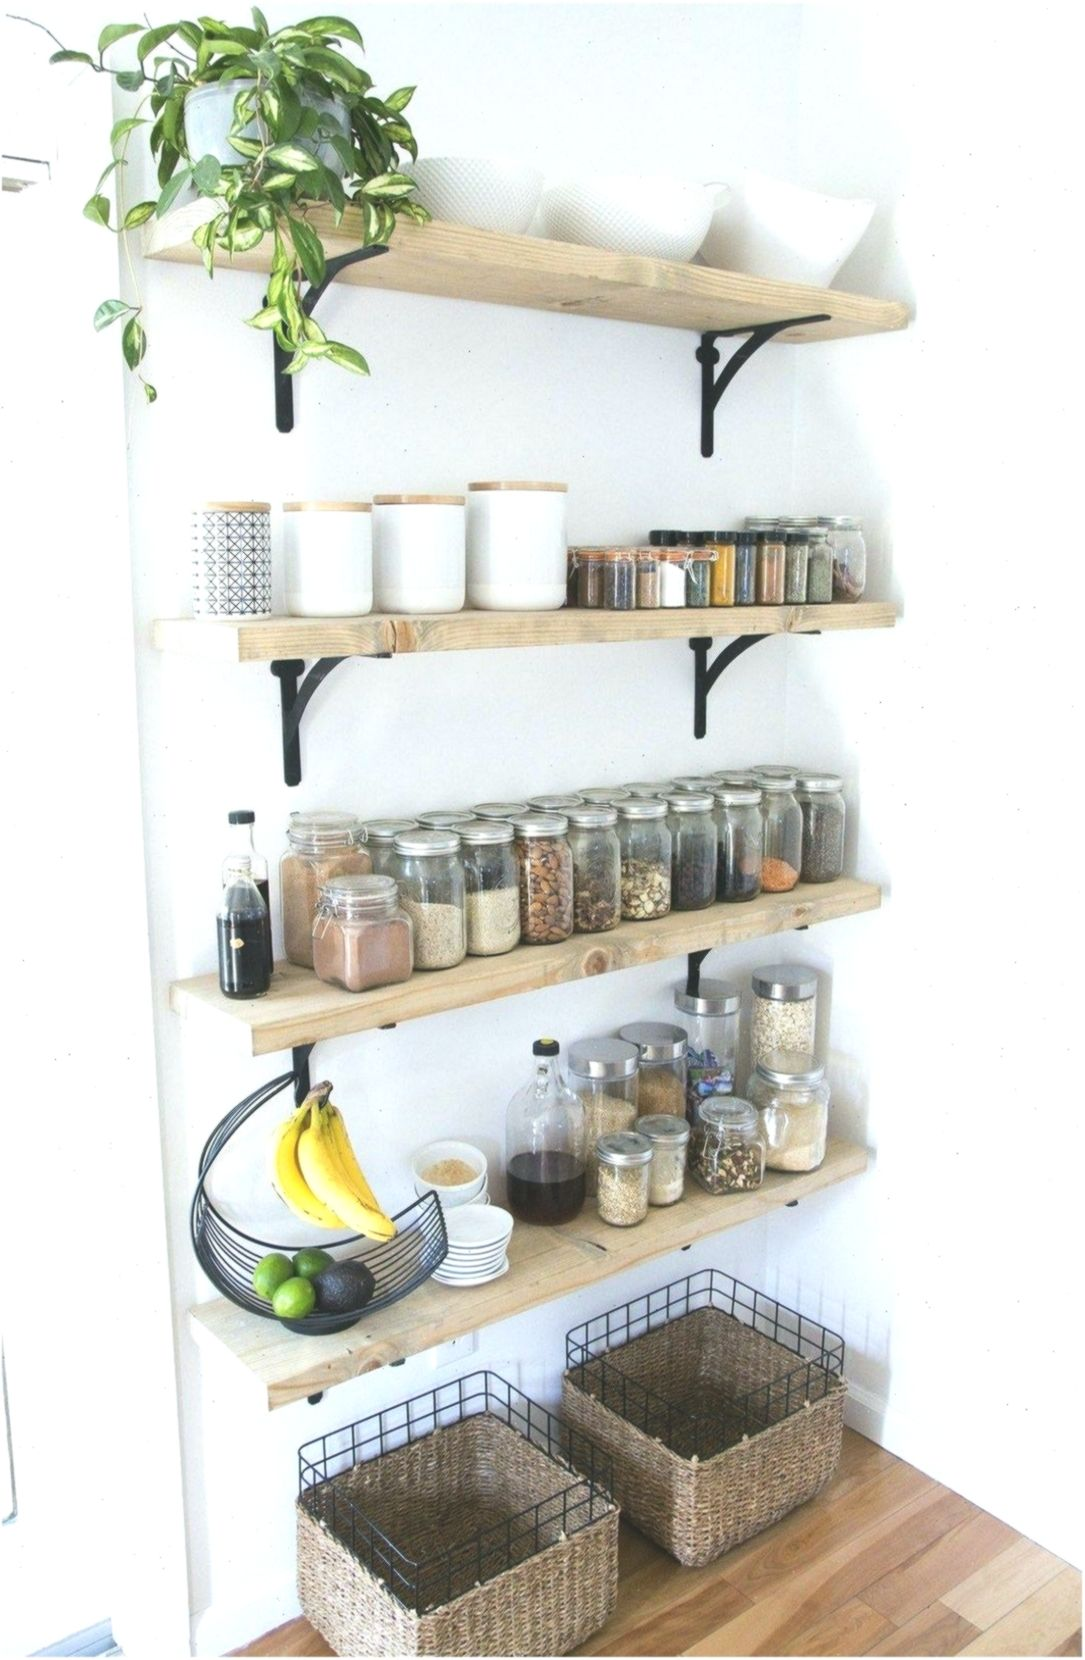 DIY Kitchen Ideas for Small Spaces - Besten Neu deen